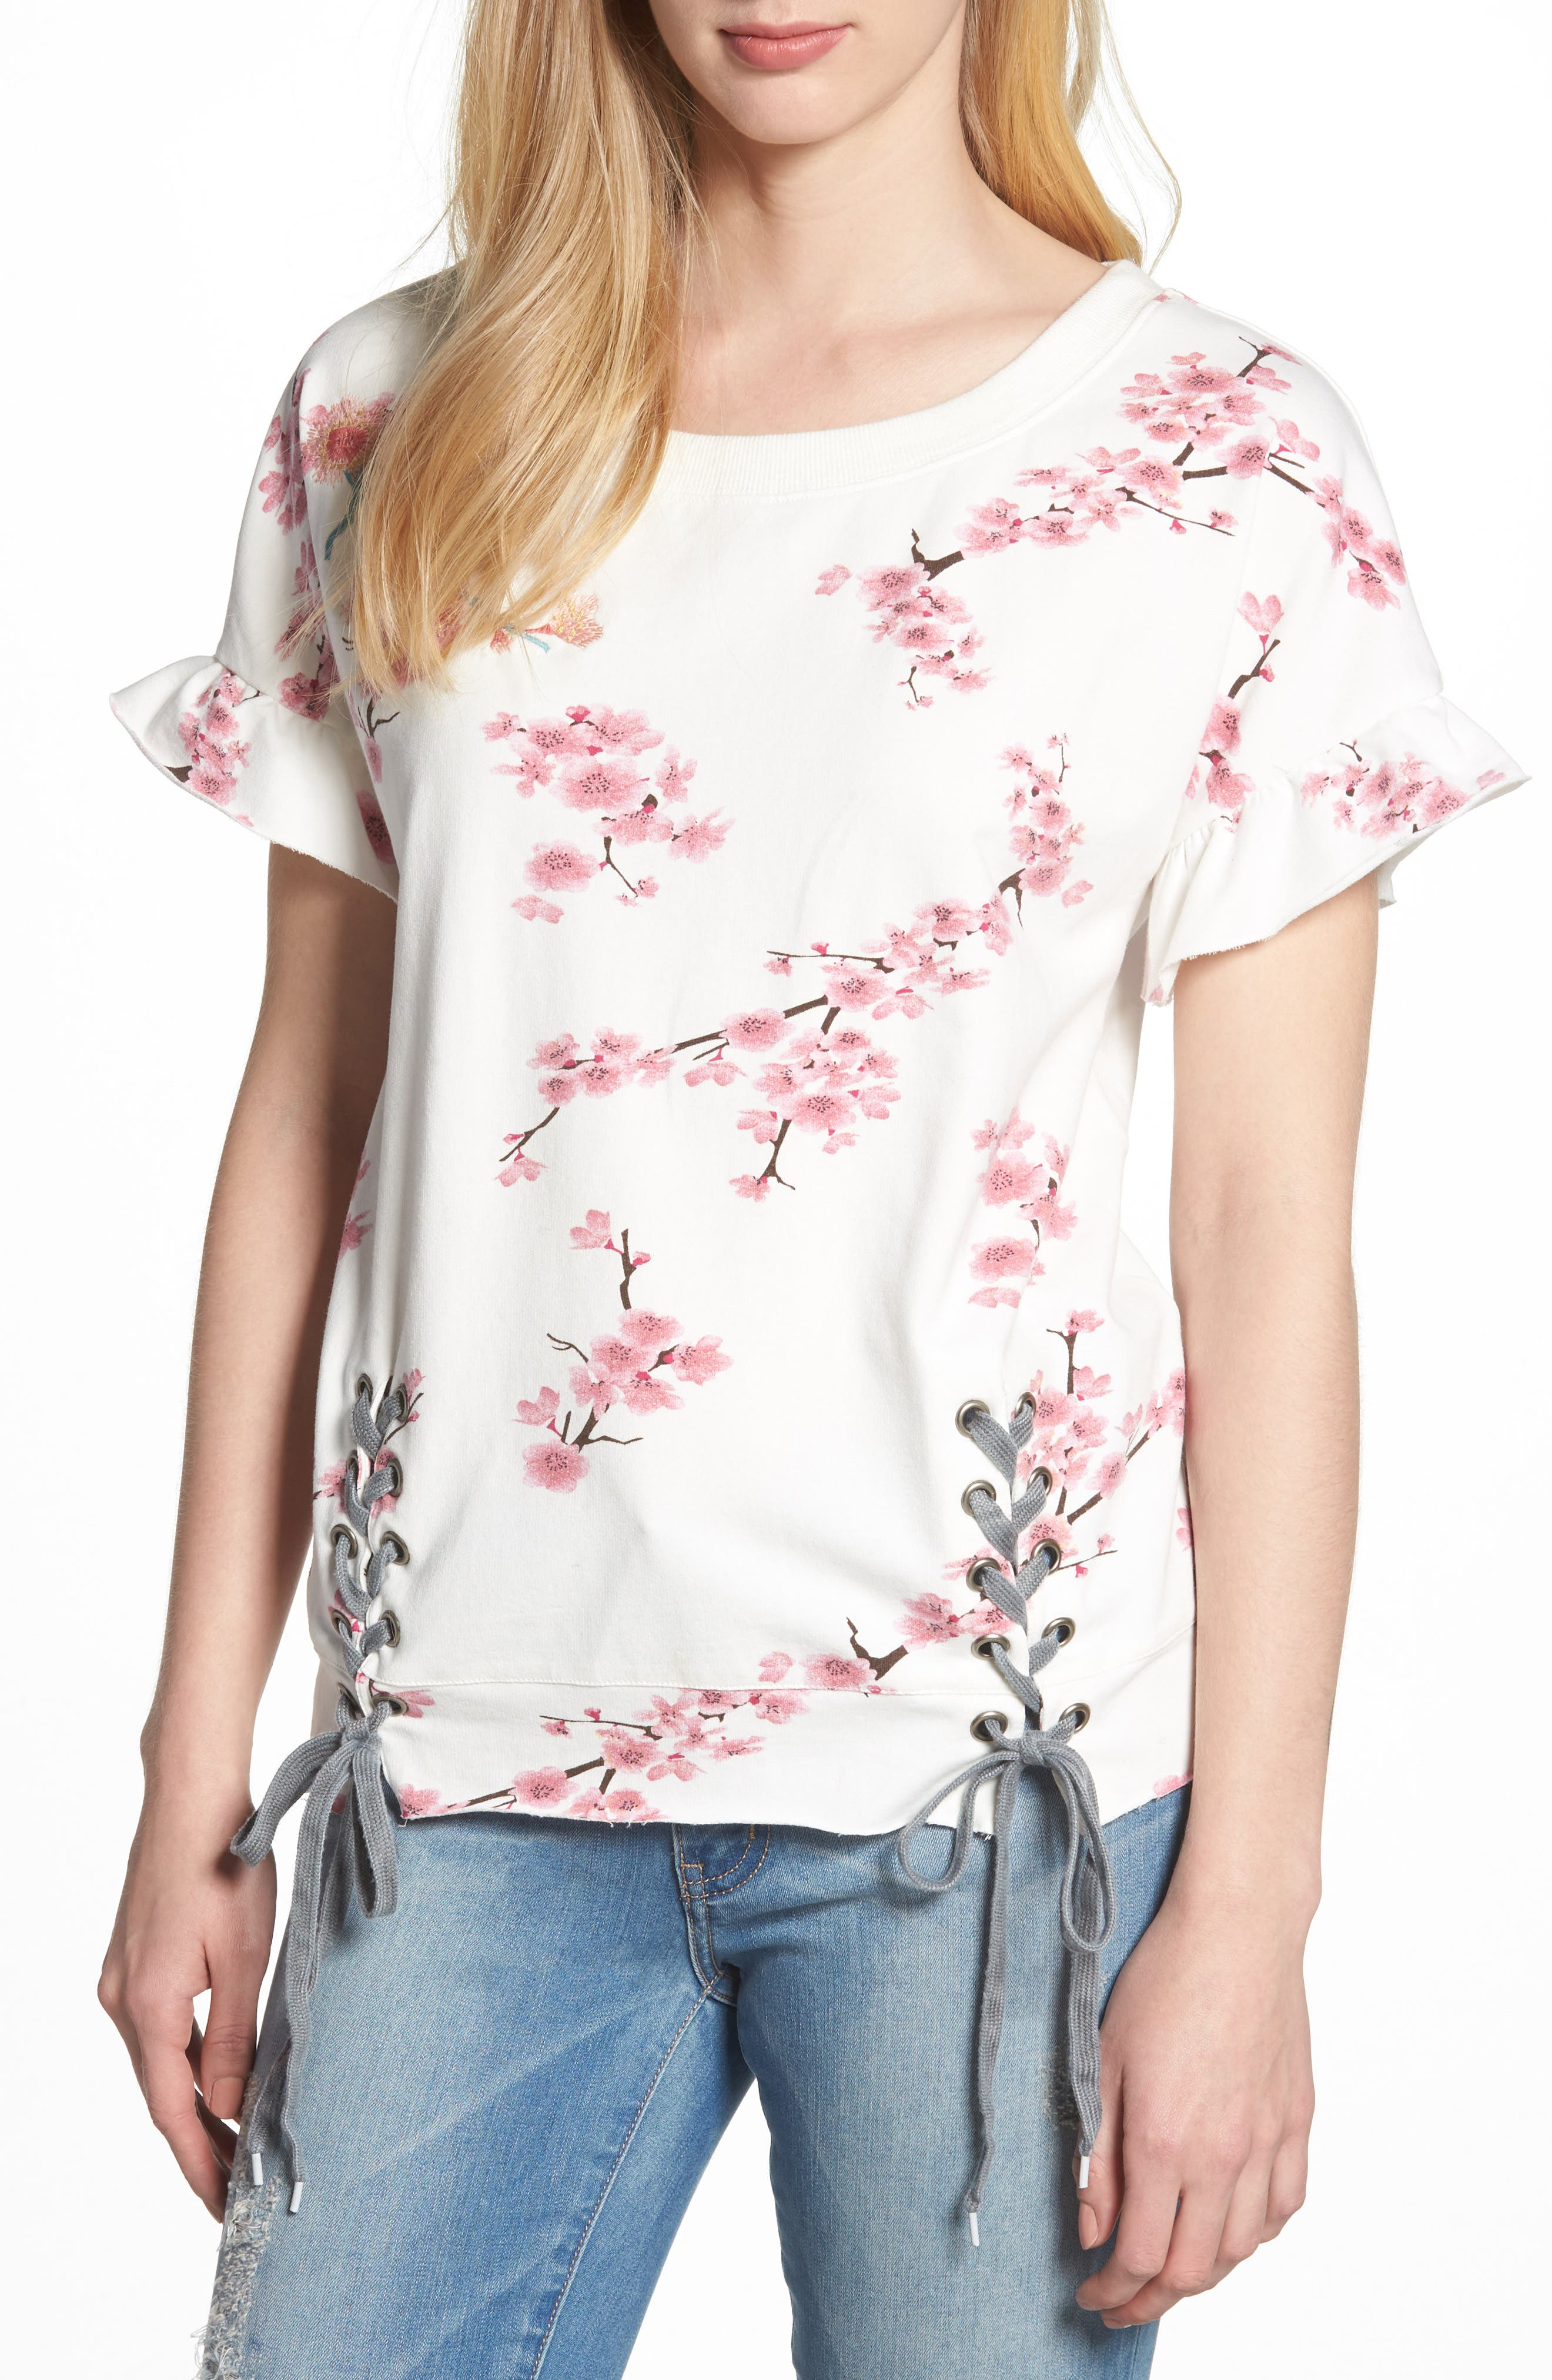 BILLY T Cherry Blossom Short Sleeve Lace-Up Sweatshirt in White Cherry Blossom